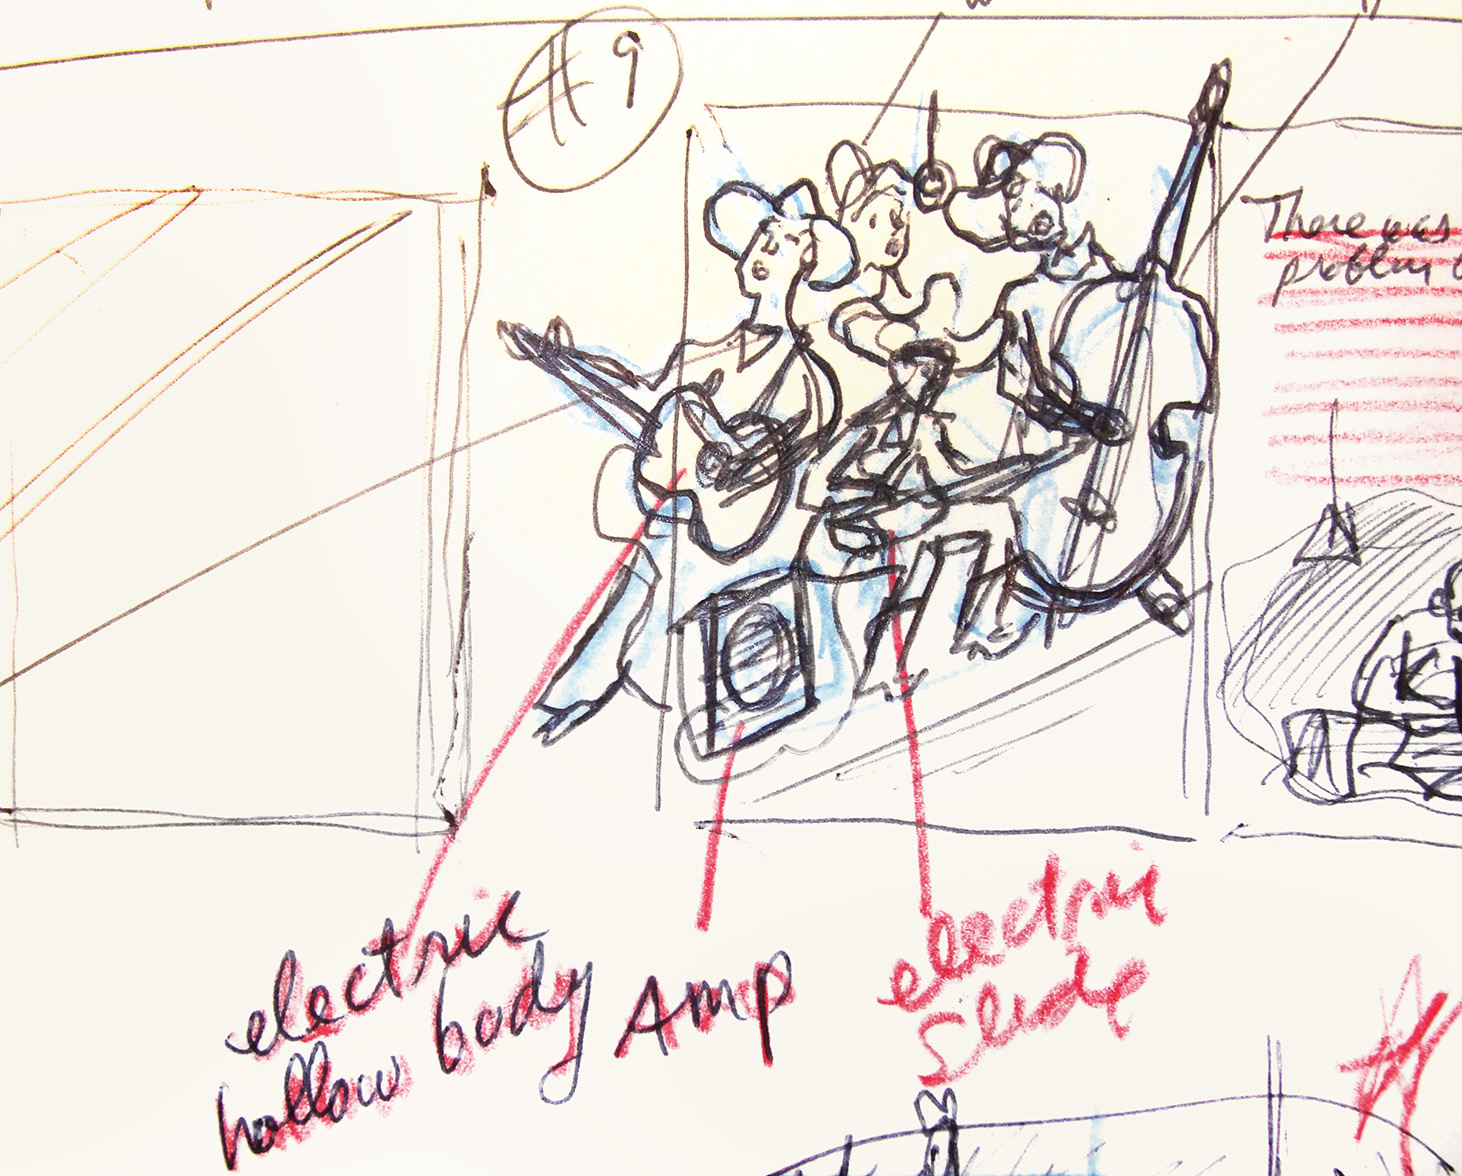 one of the rough preliminary storyboard thumbnail sketches for  Gizmos, Gadgets, and Guitars  –to begin working out which actions and events in the story will be illustrated… This one of a Western Swing Band trio testing out an early electrified acoustic guitar and an electric slide lap guitar.